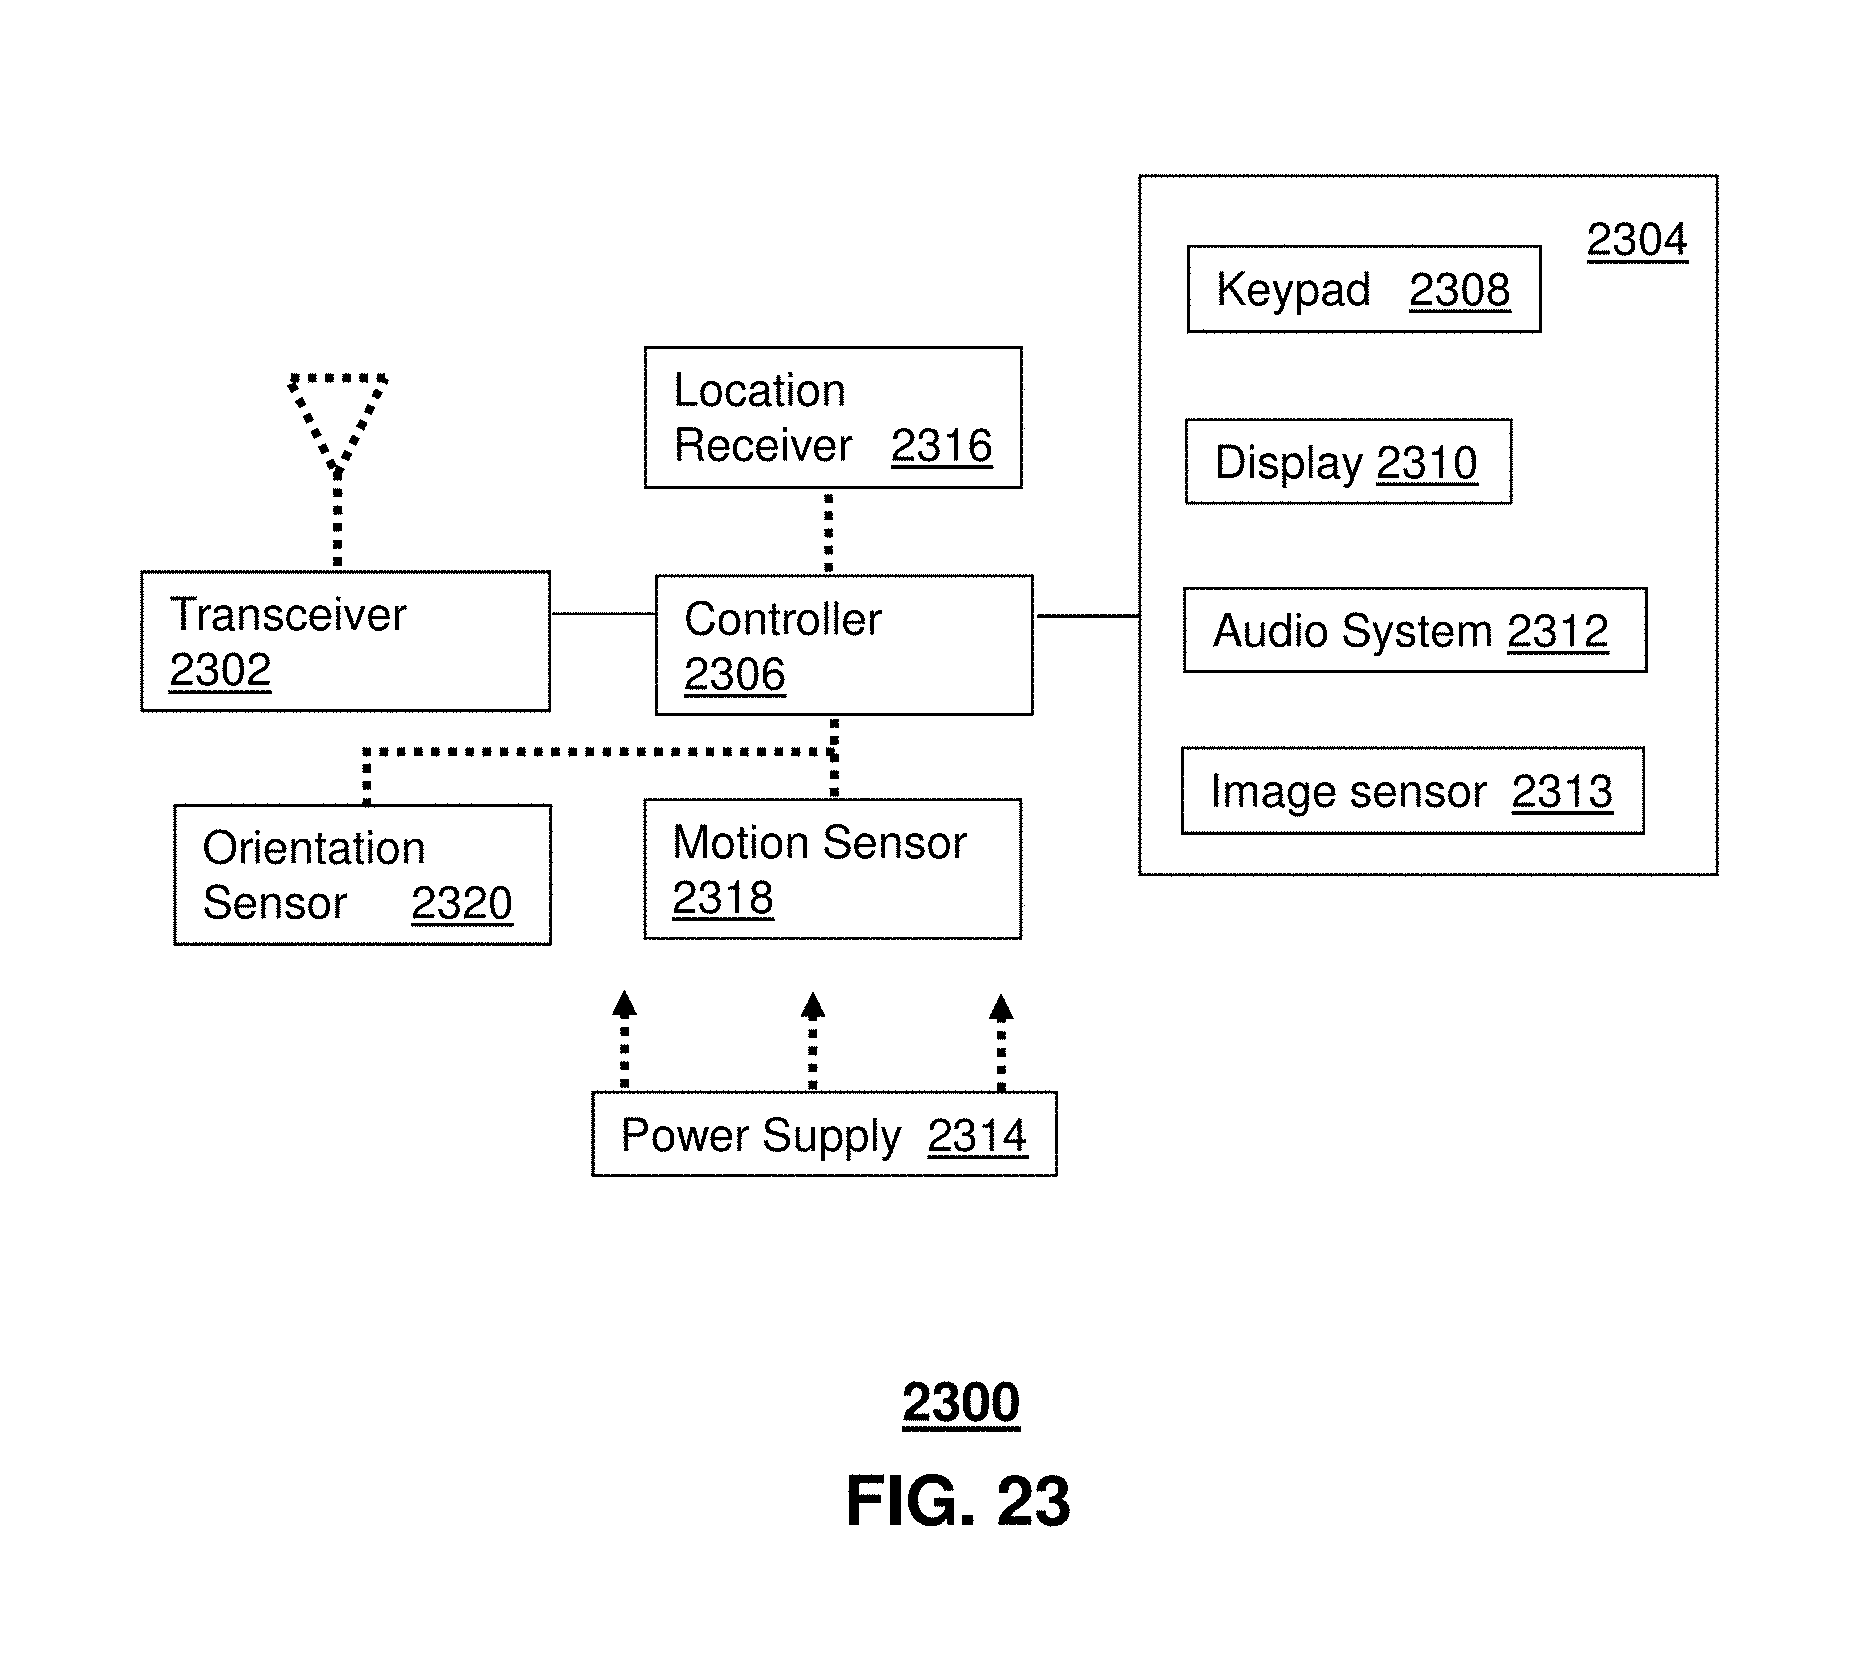 us9800327b2 apparatus for controlling operations of a rh patents google com